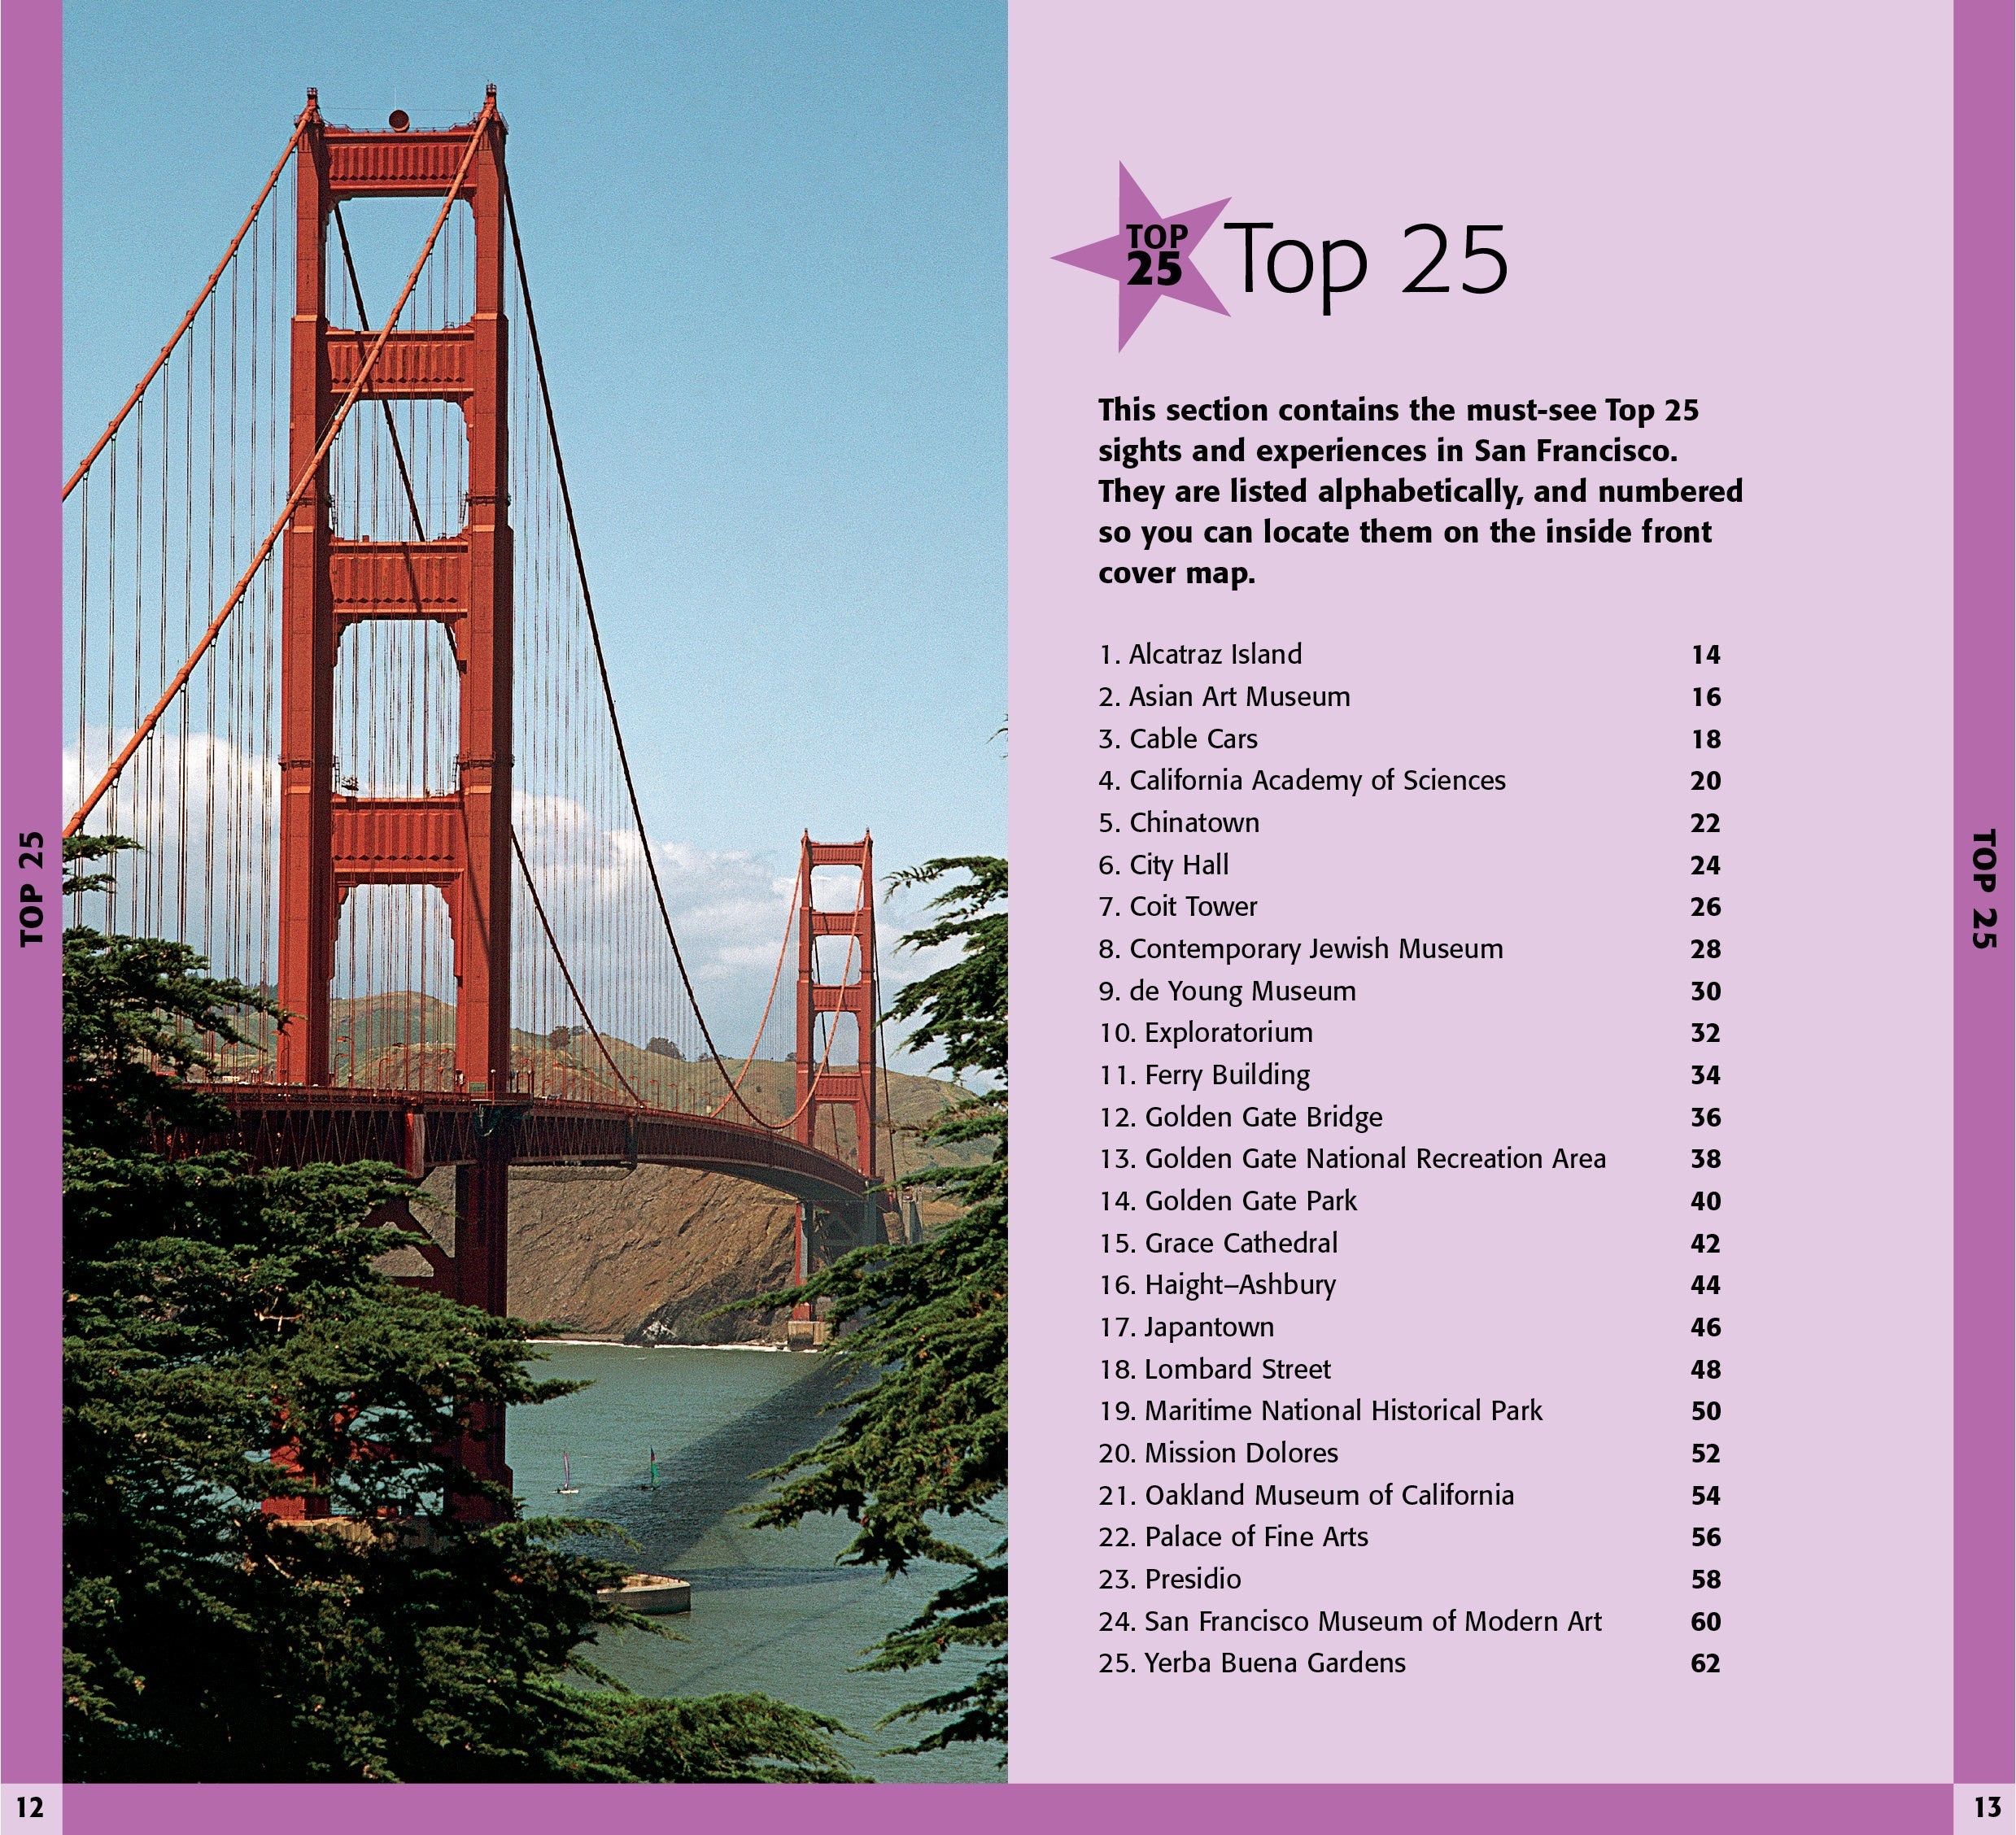 Fodor's Travel - Fodor's 25 Best San Francisco